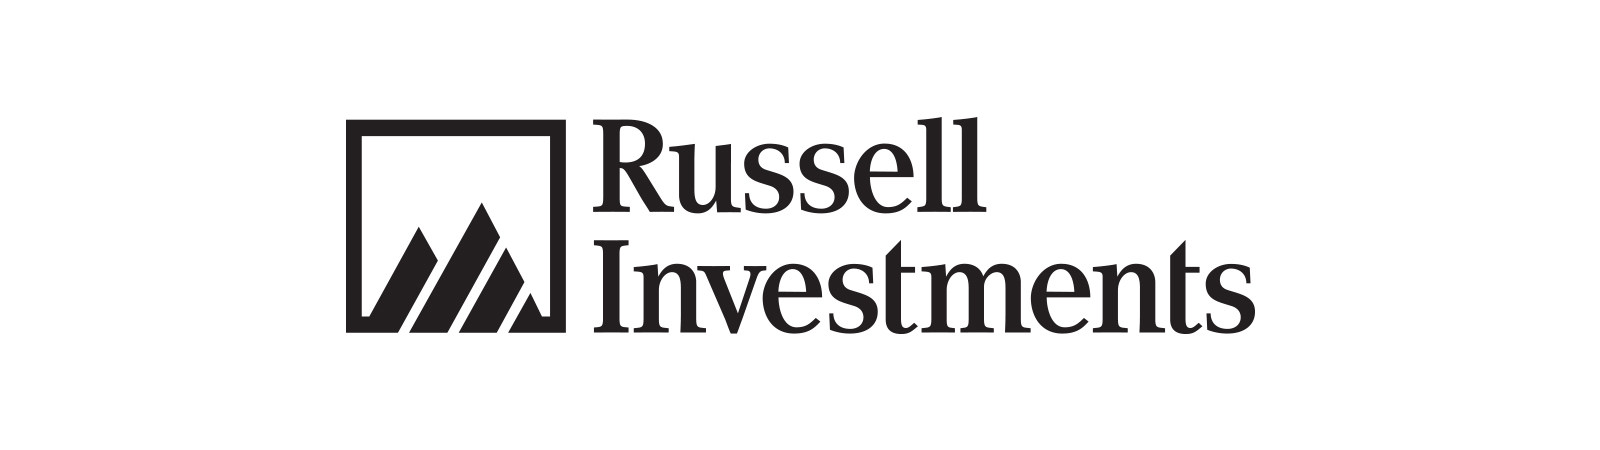 Russell investments funds under management adri saayman sanlam investment management